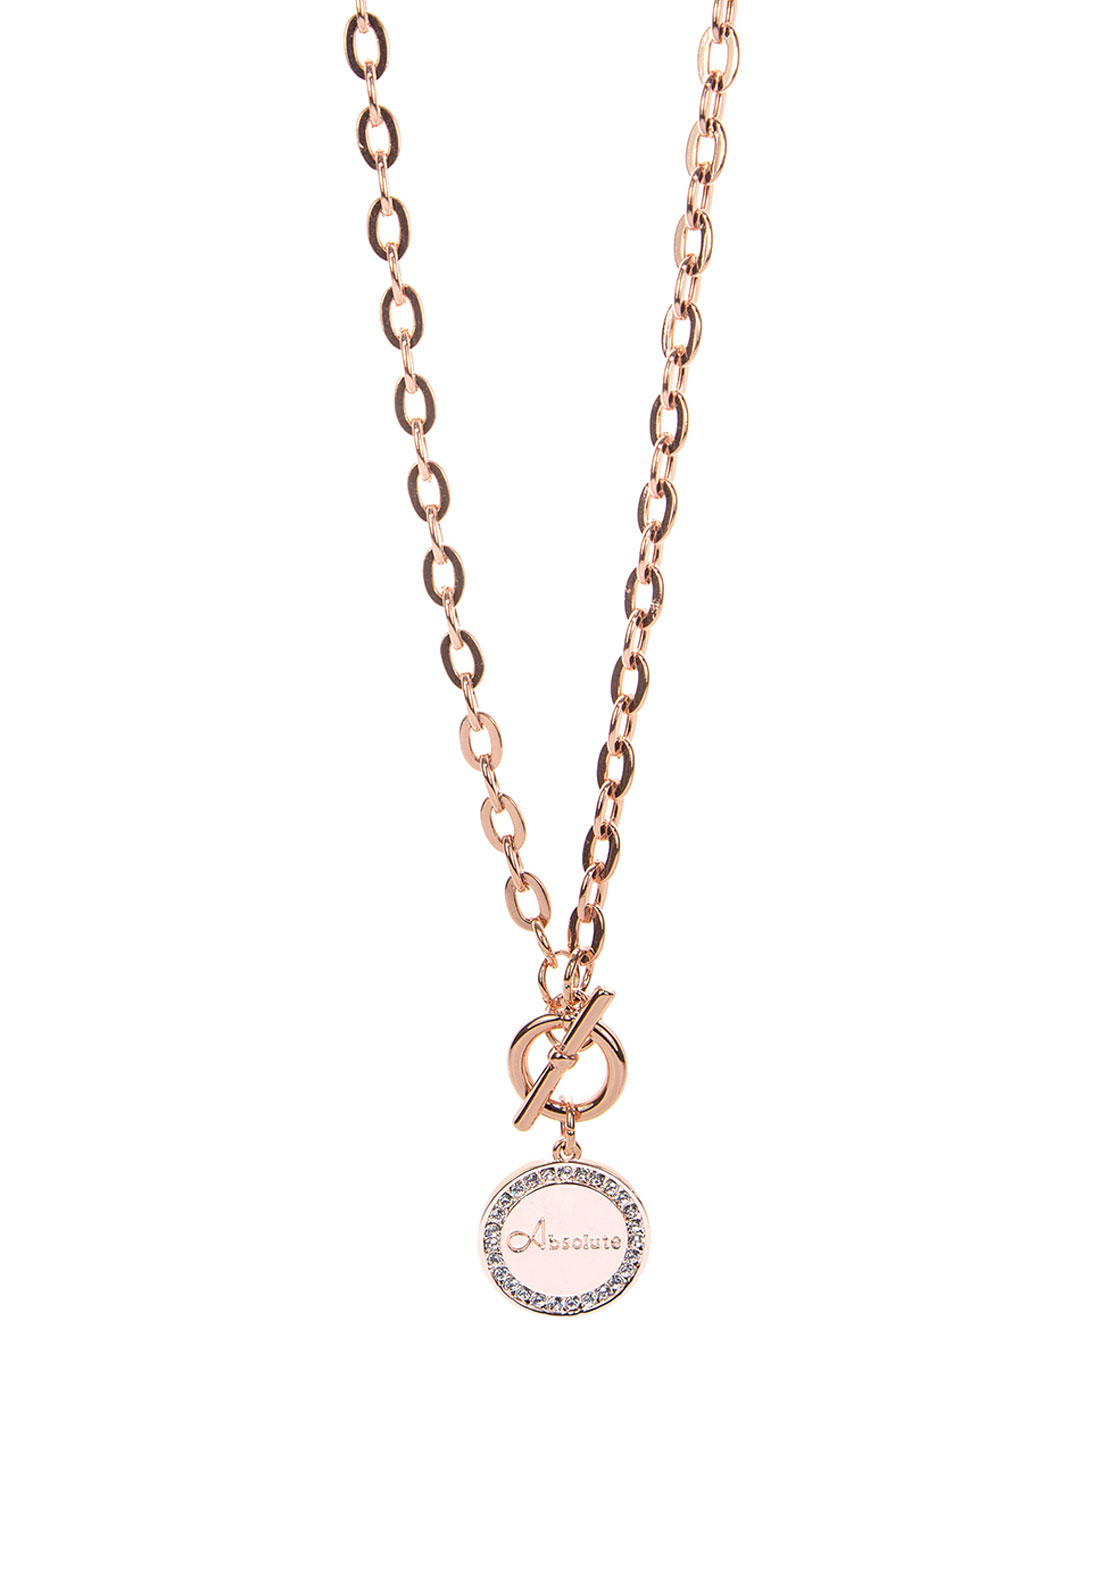 Absolute Jewellery Branded Pendant Necklace